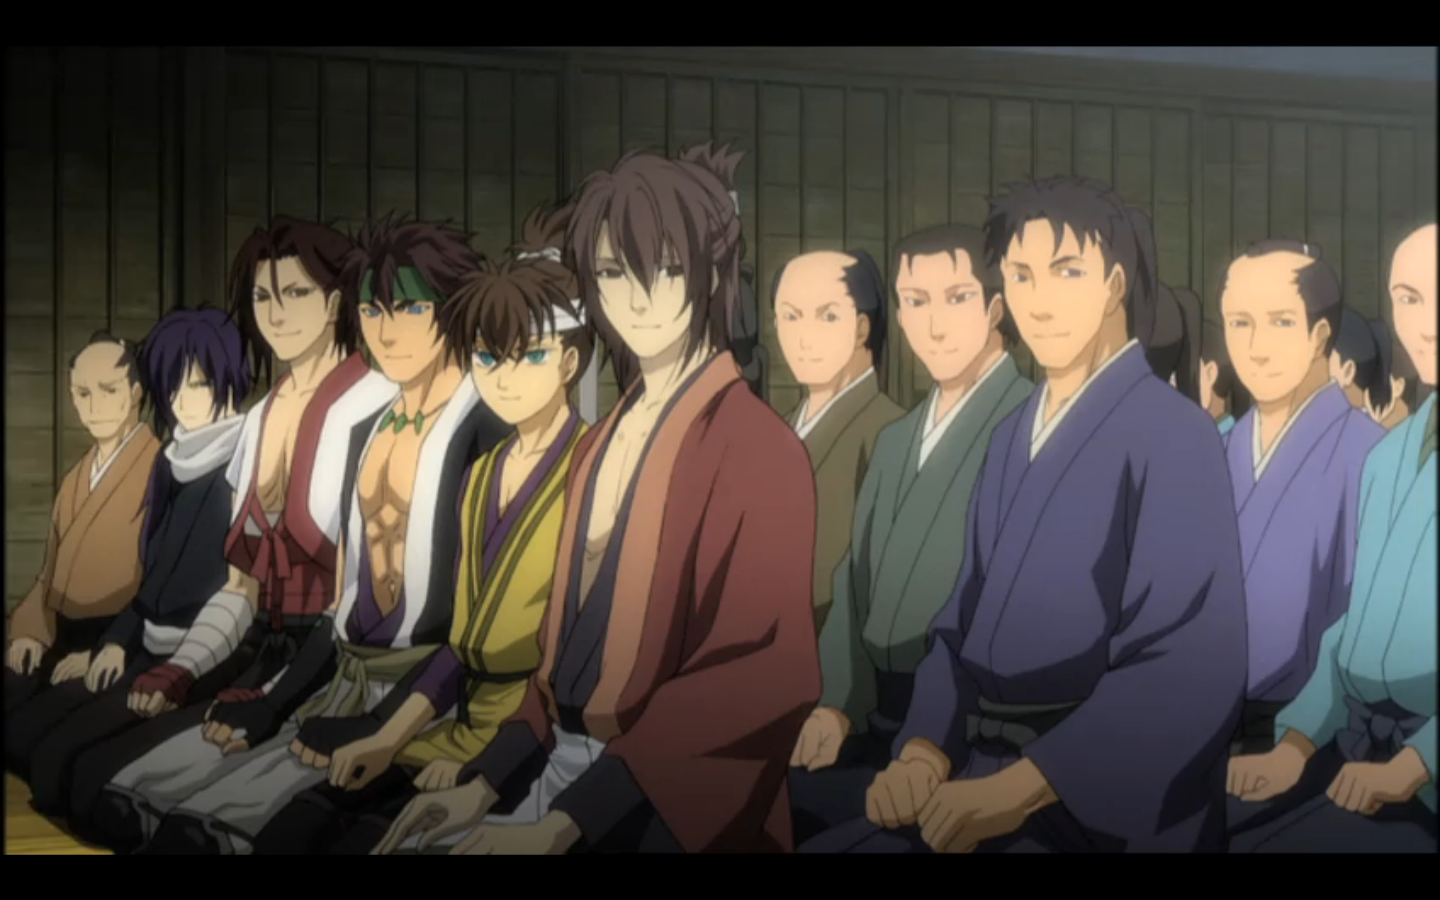 Best Anime Wallpaper: Hakuouki Shinsengumi Kitan, 627948, Anime